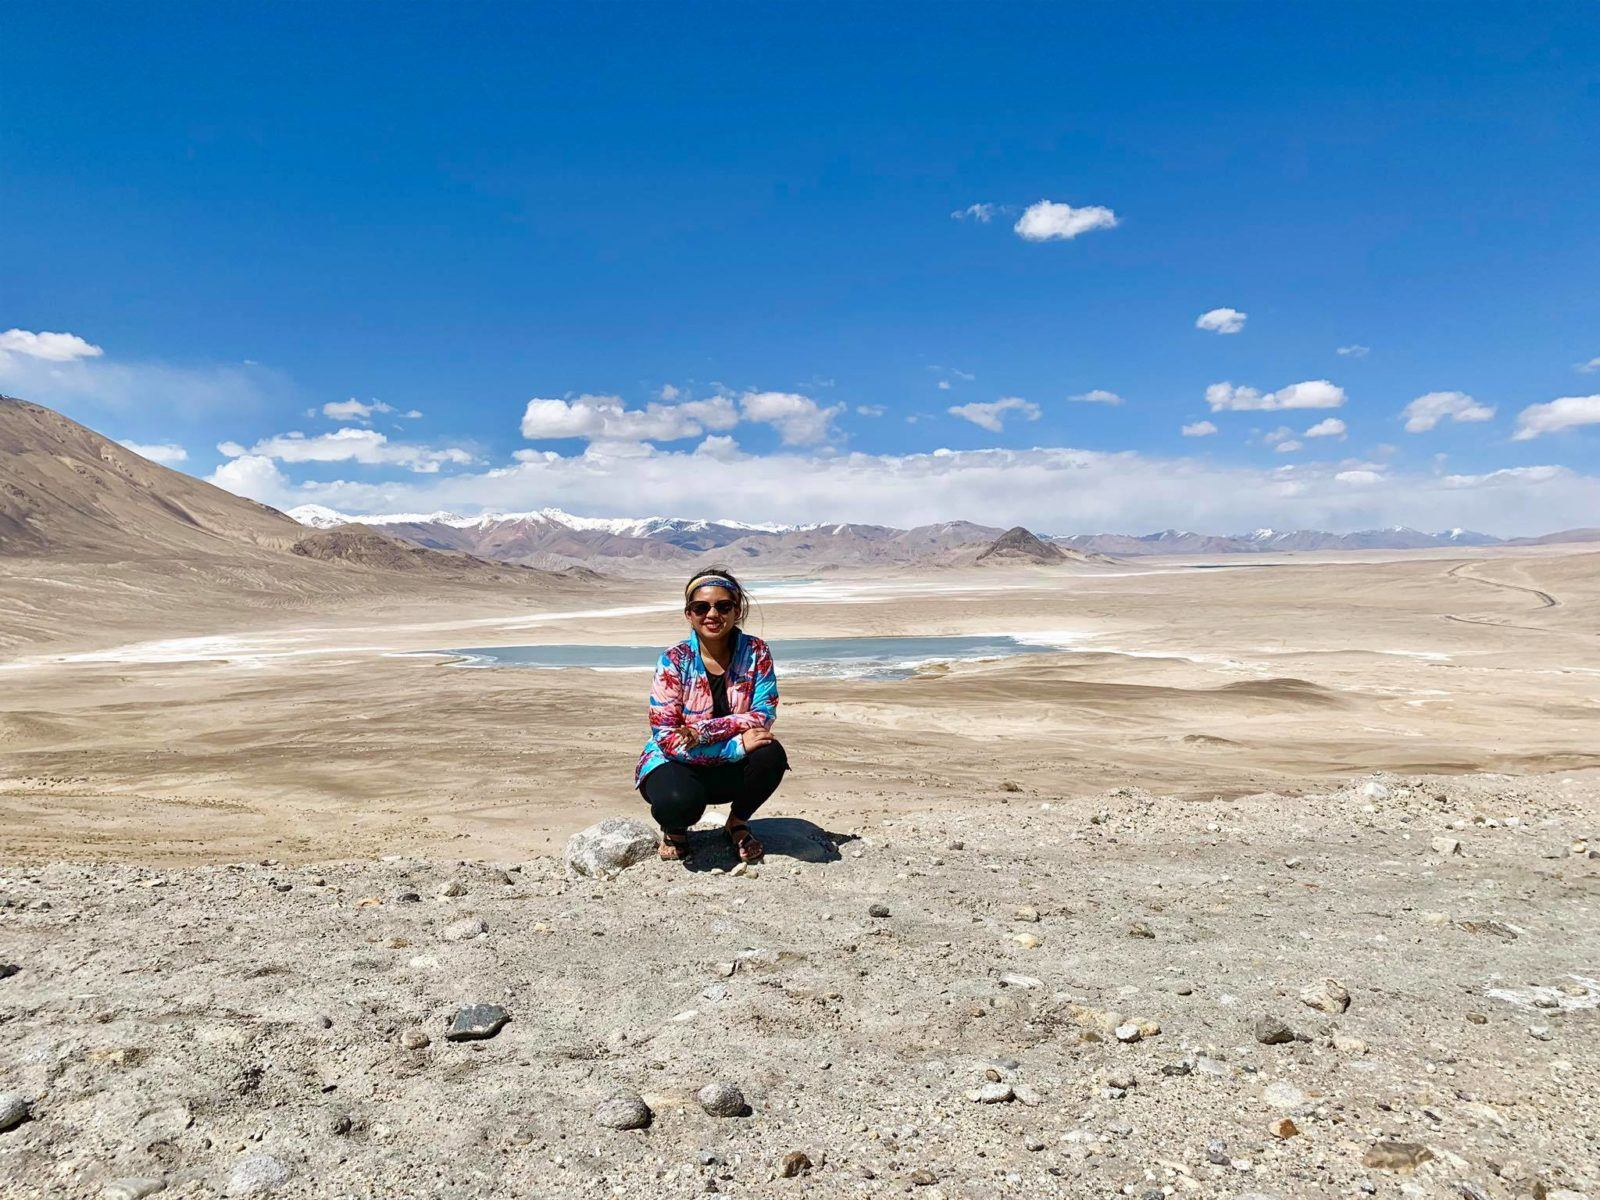 13 Things You Should Not Miss When You Travel the Pamir Highway in Tajikistan